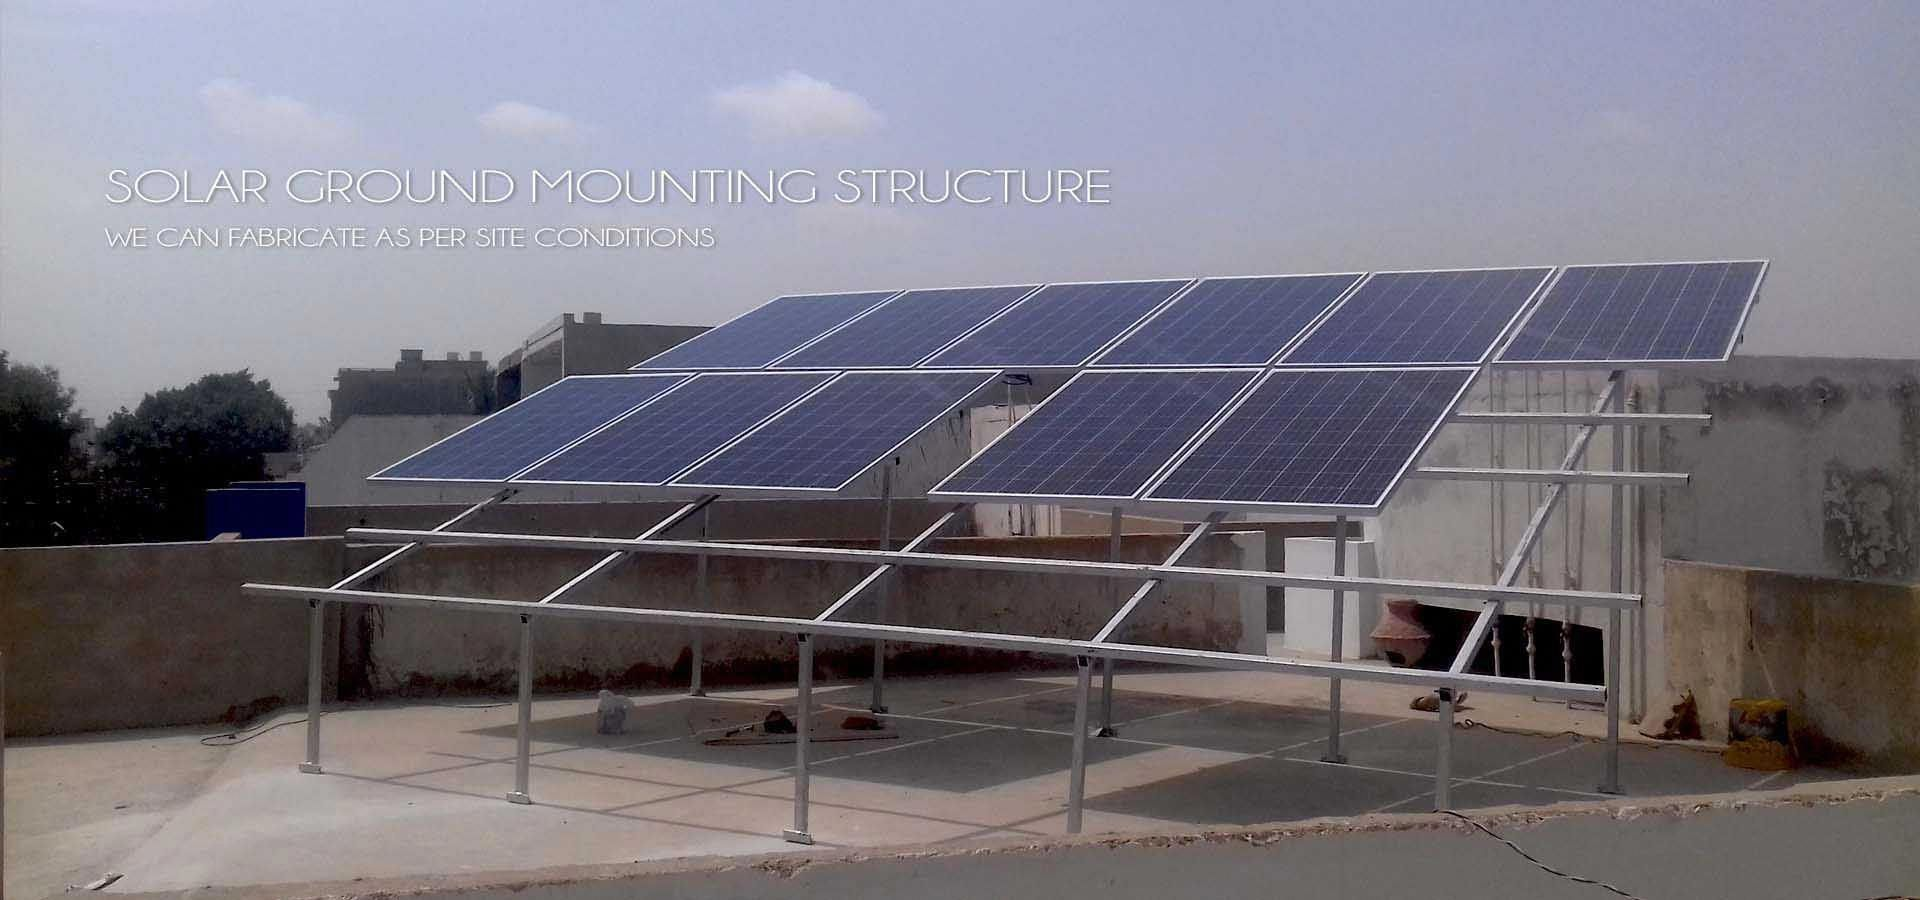 We Design Solar Panel Structure As Per Site Conditions Our Ms Structure Ability To Install 3 Up Solar Panels Solarpan In 2020 Solar Energy Panels Solar Panels Solar